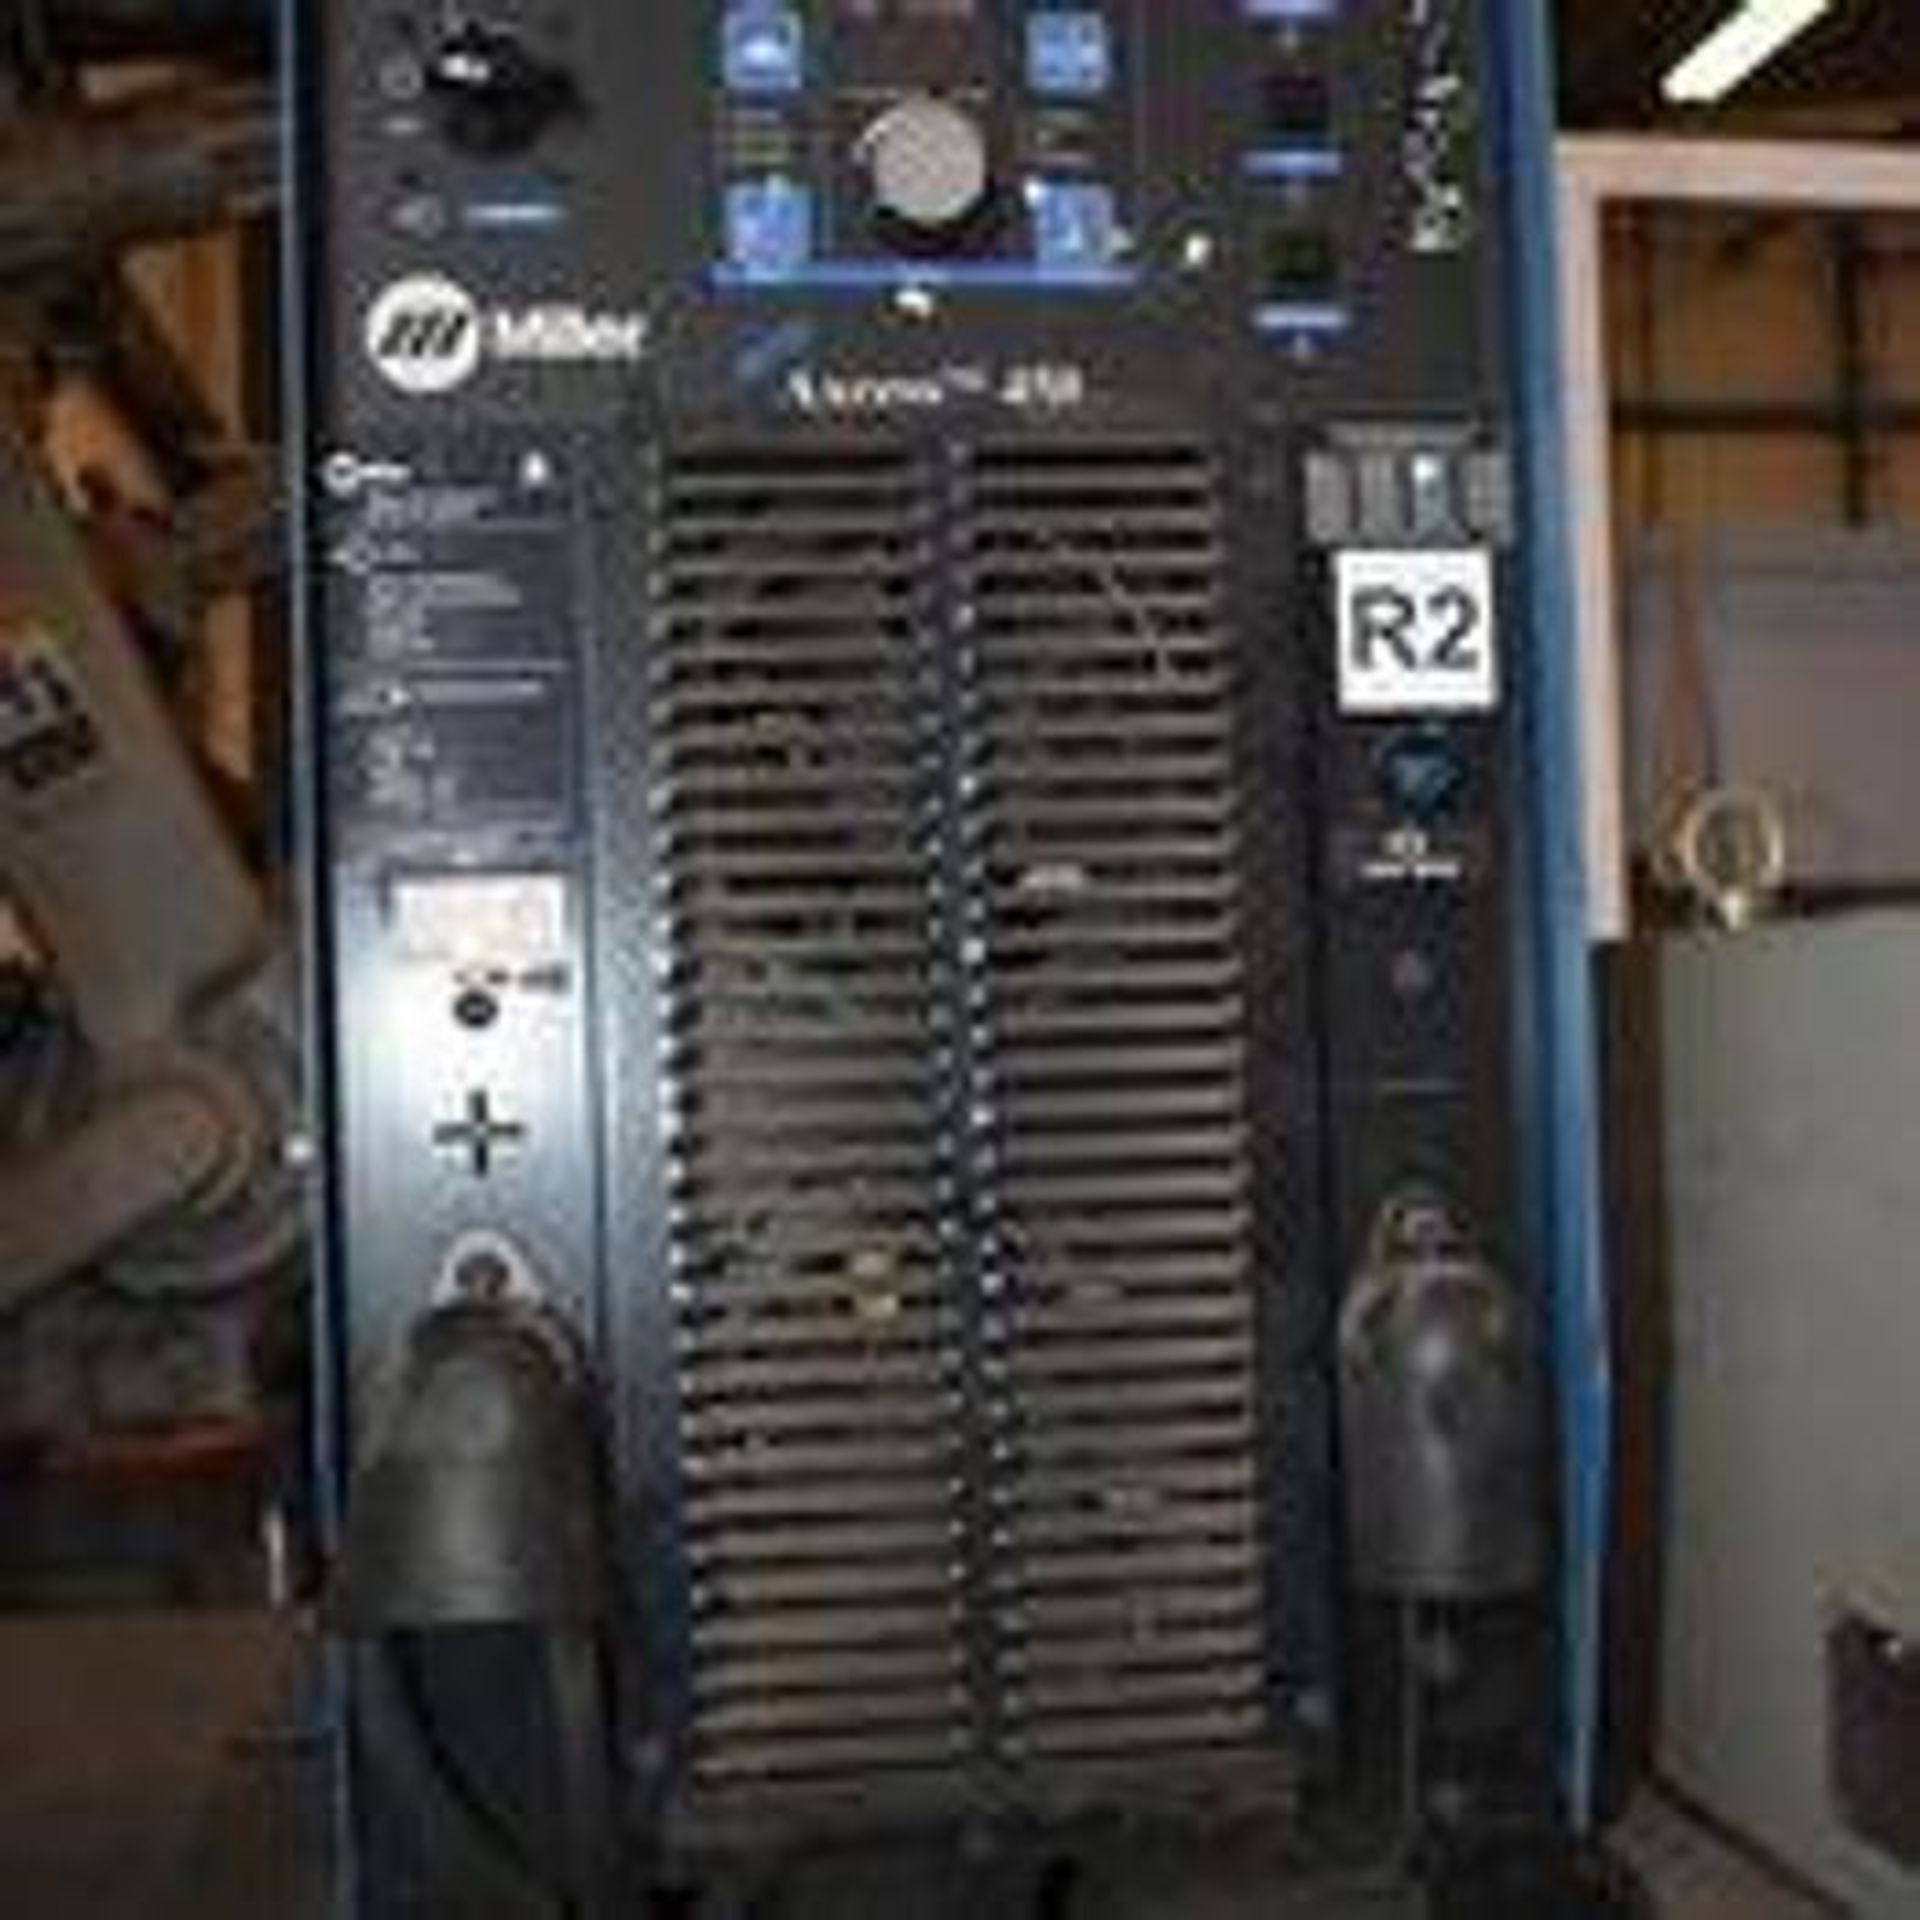 YASKAWA MOTOMAN EA1900N MULTI-ARM LARGE MIG WELDING CELL FOR LARGE TUBE AND PIPE APPLICATIONS - Image 18 of 53